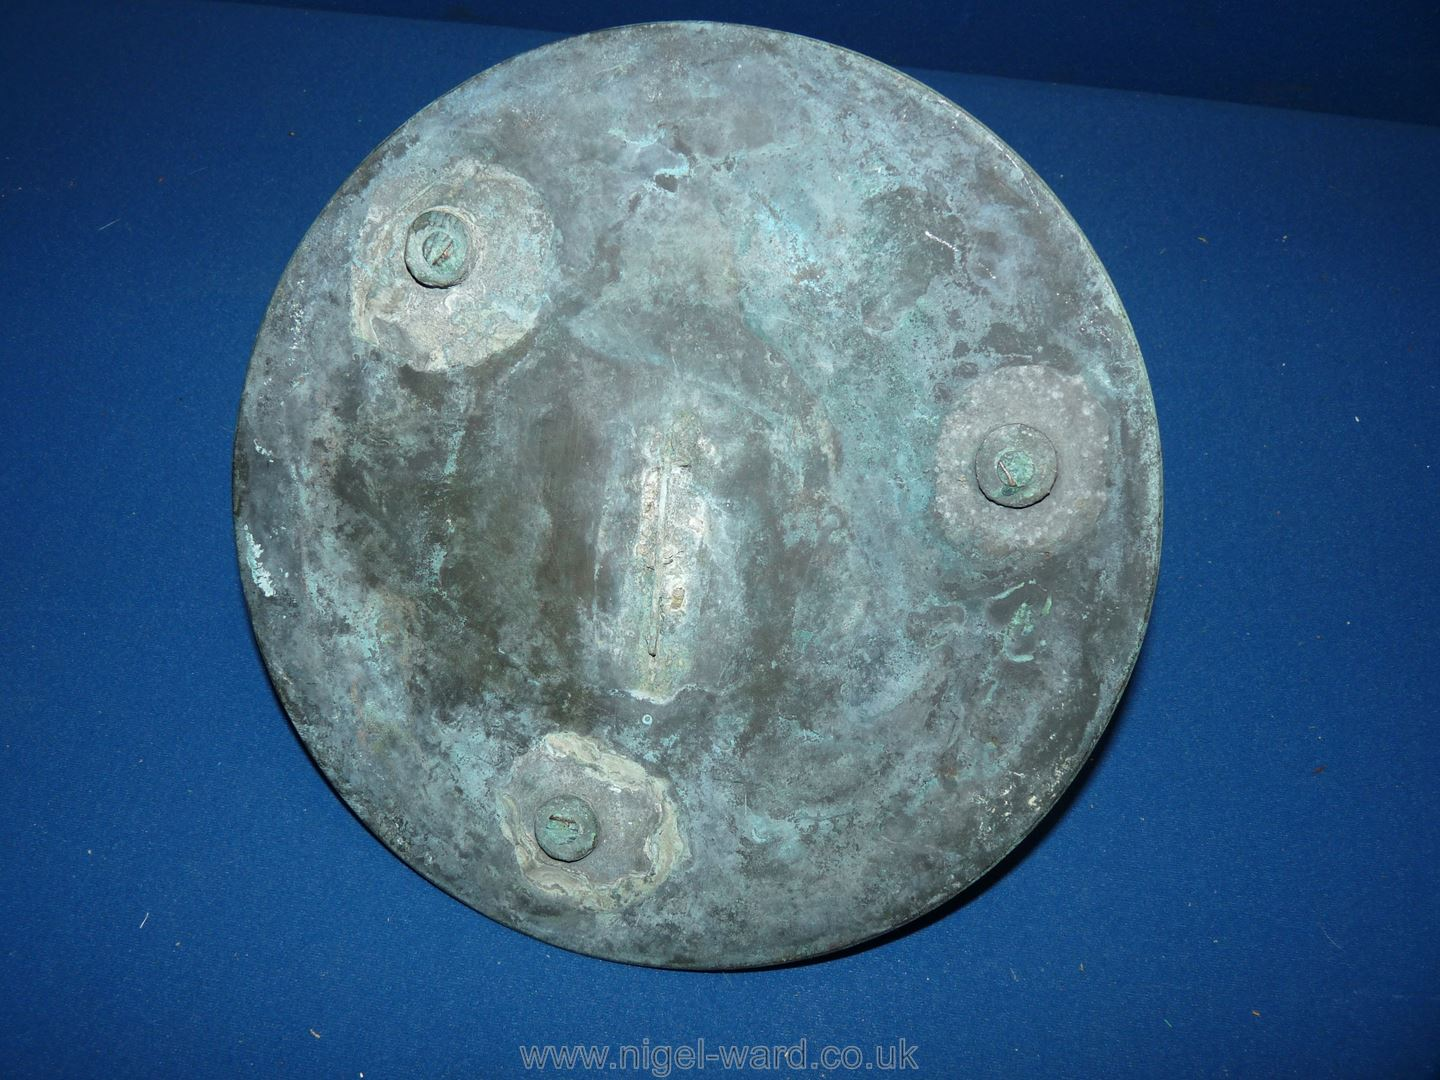 An antique bronze Sundial with weathered green patina, - Image 3 of 3